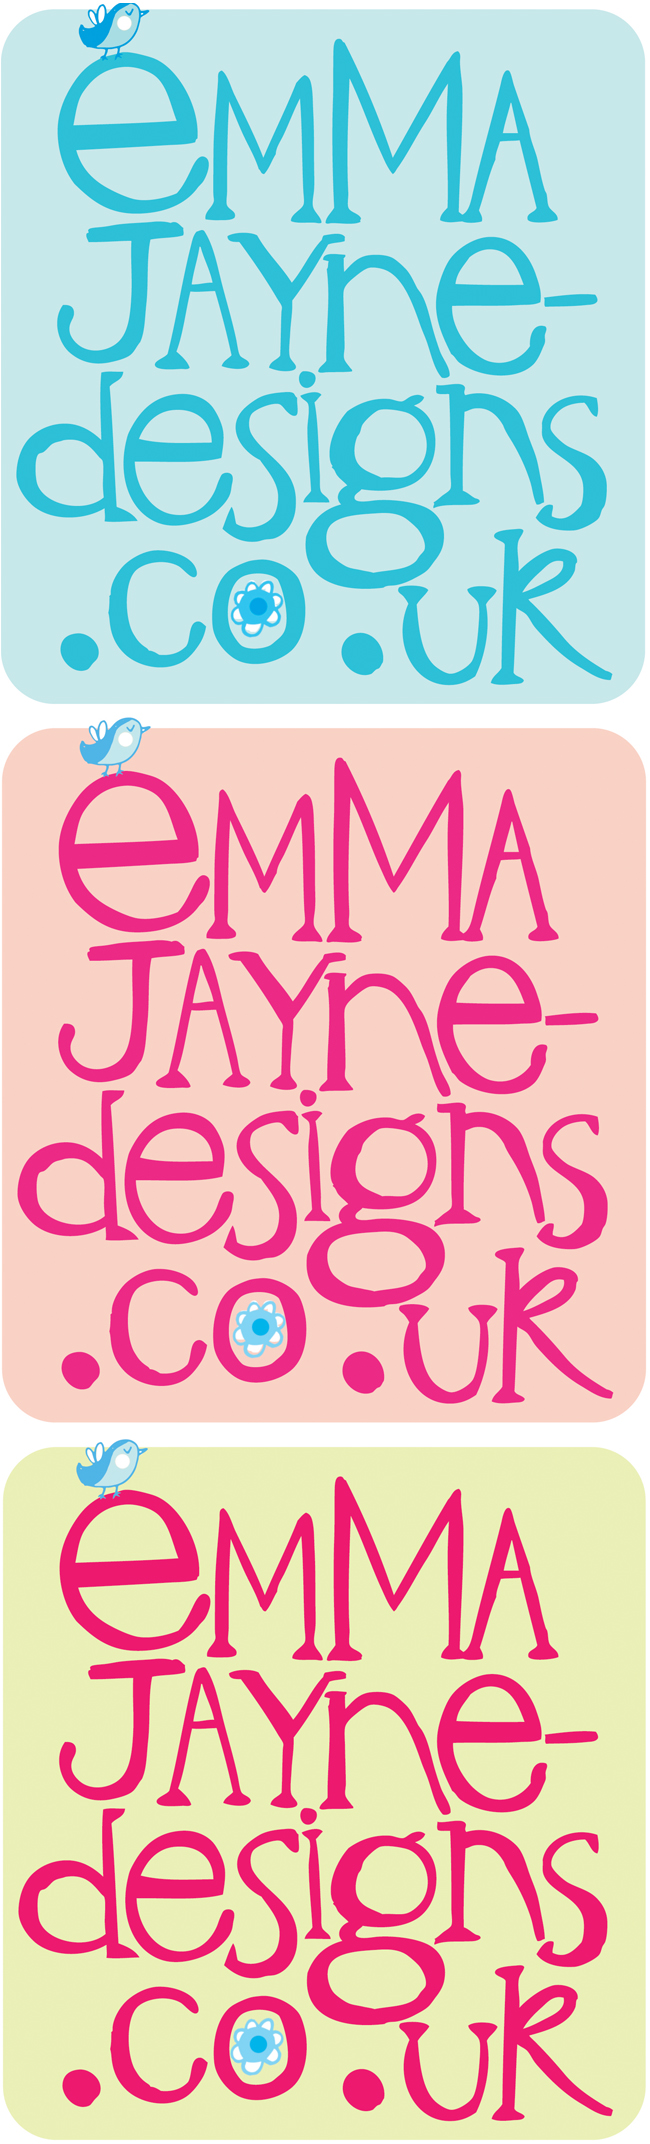 creating-a-logo8-emmajayne-designs